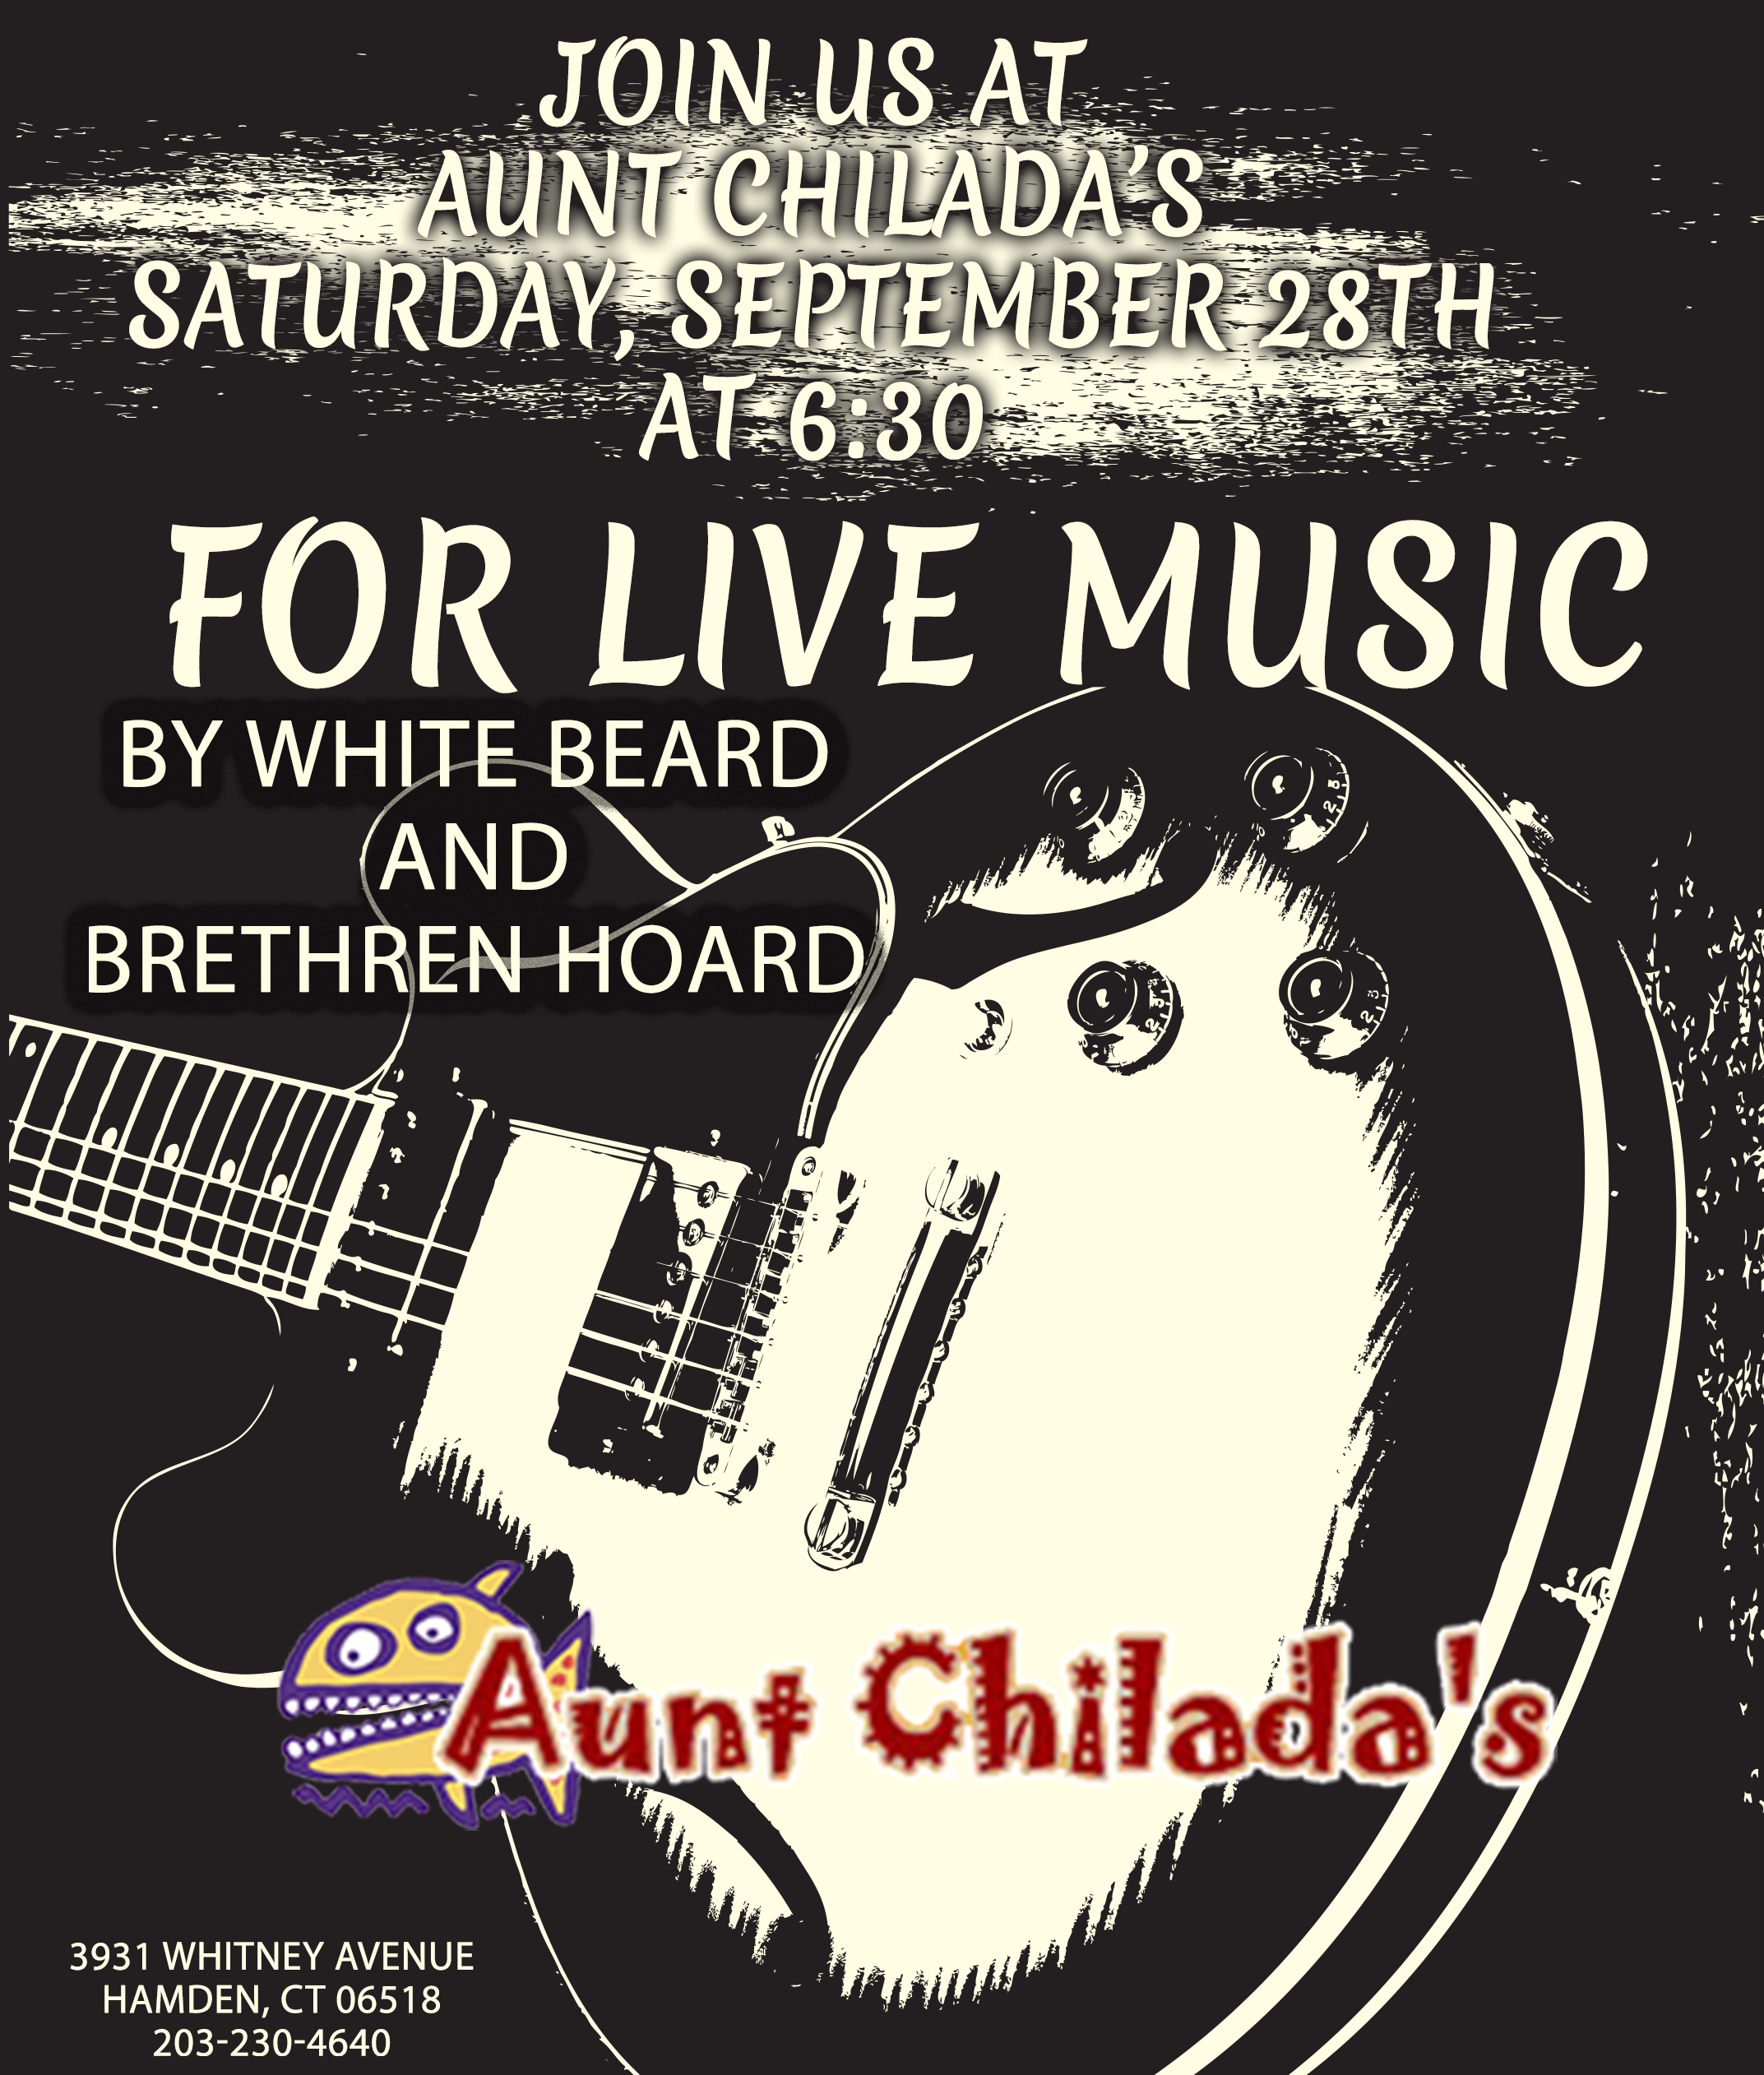 Join us at Aunt Chilada's Saturday, September 28th at 6:30 for live music by White Beard and Brethren Hoard